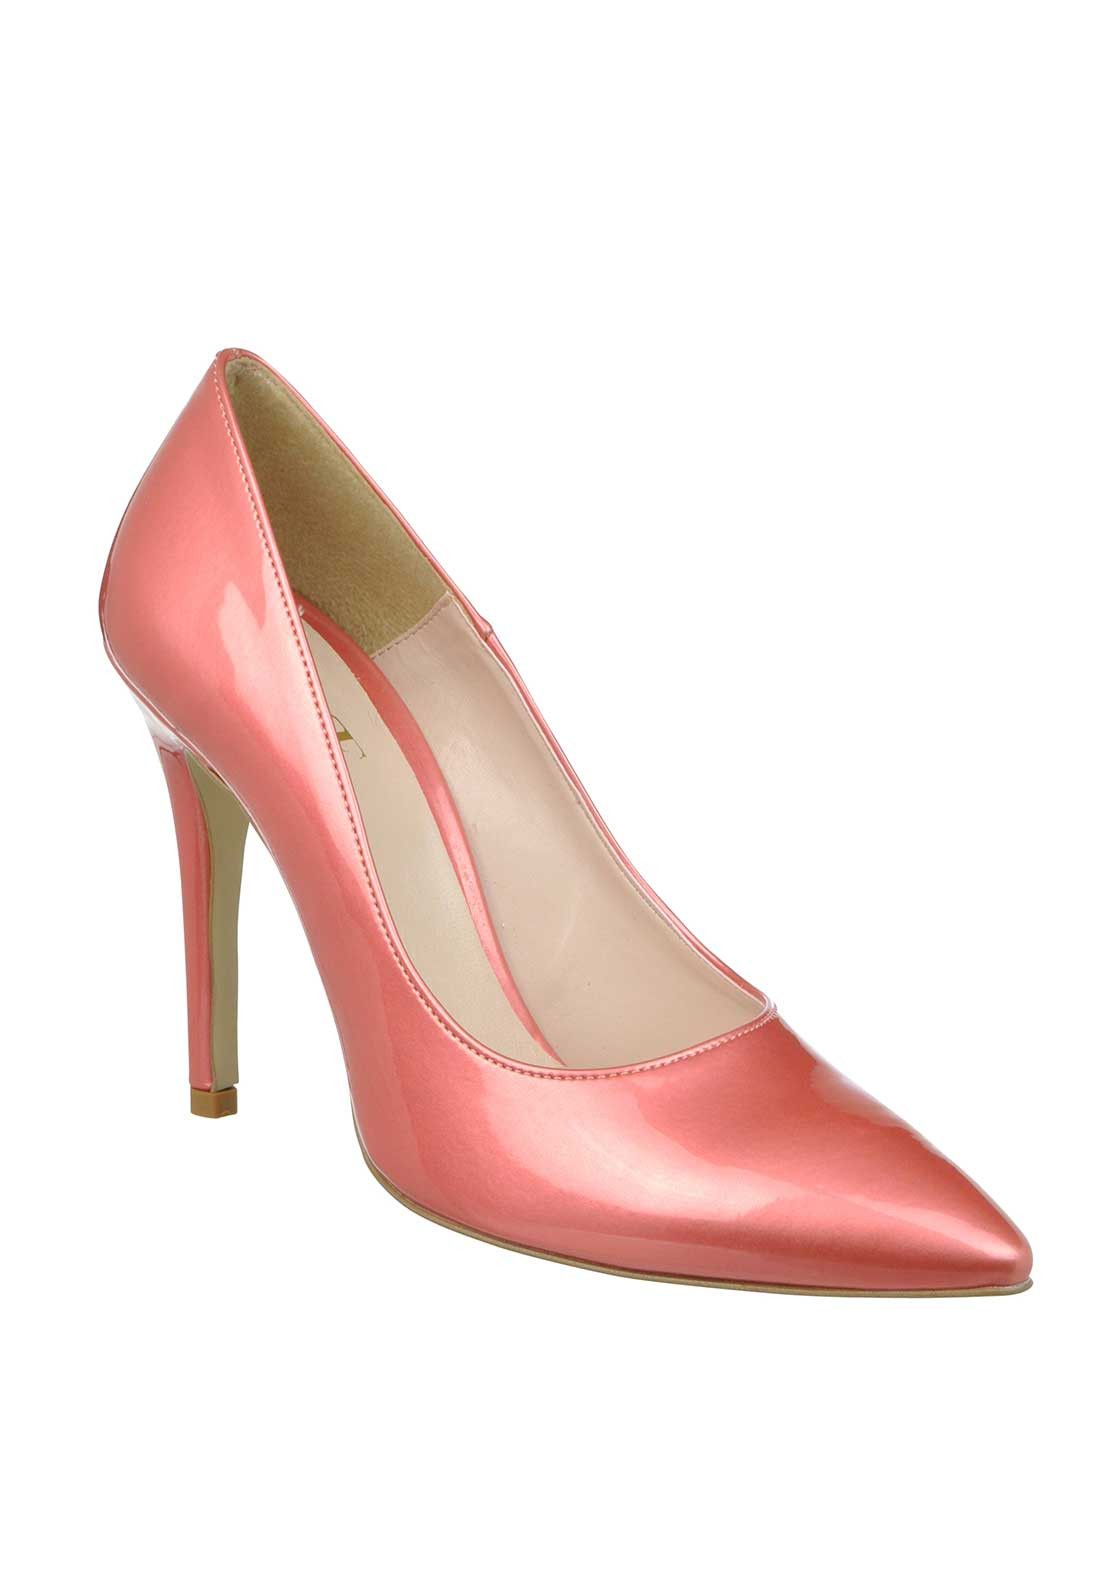 McElhinney's Patent Pointed Toe Heeled Shoes, Pink